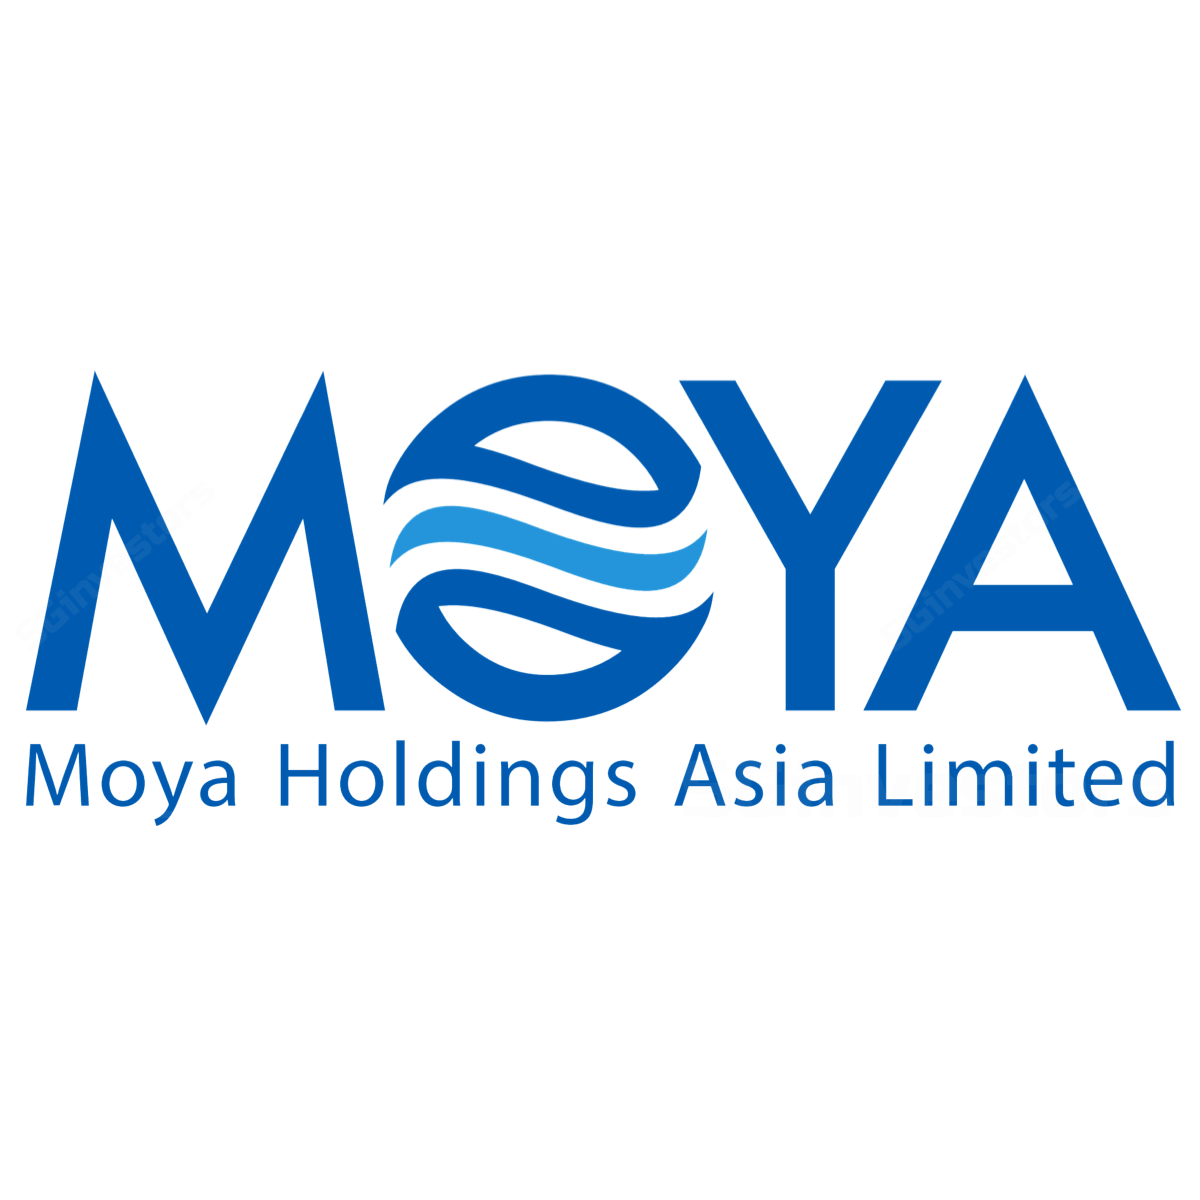 MOYA HOLDINGS ASIA LIMITED (SGX:5WE) | SGinvestors.io